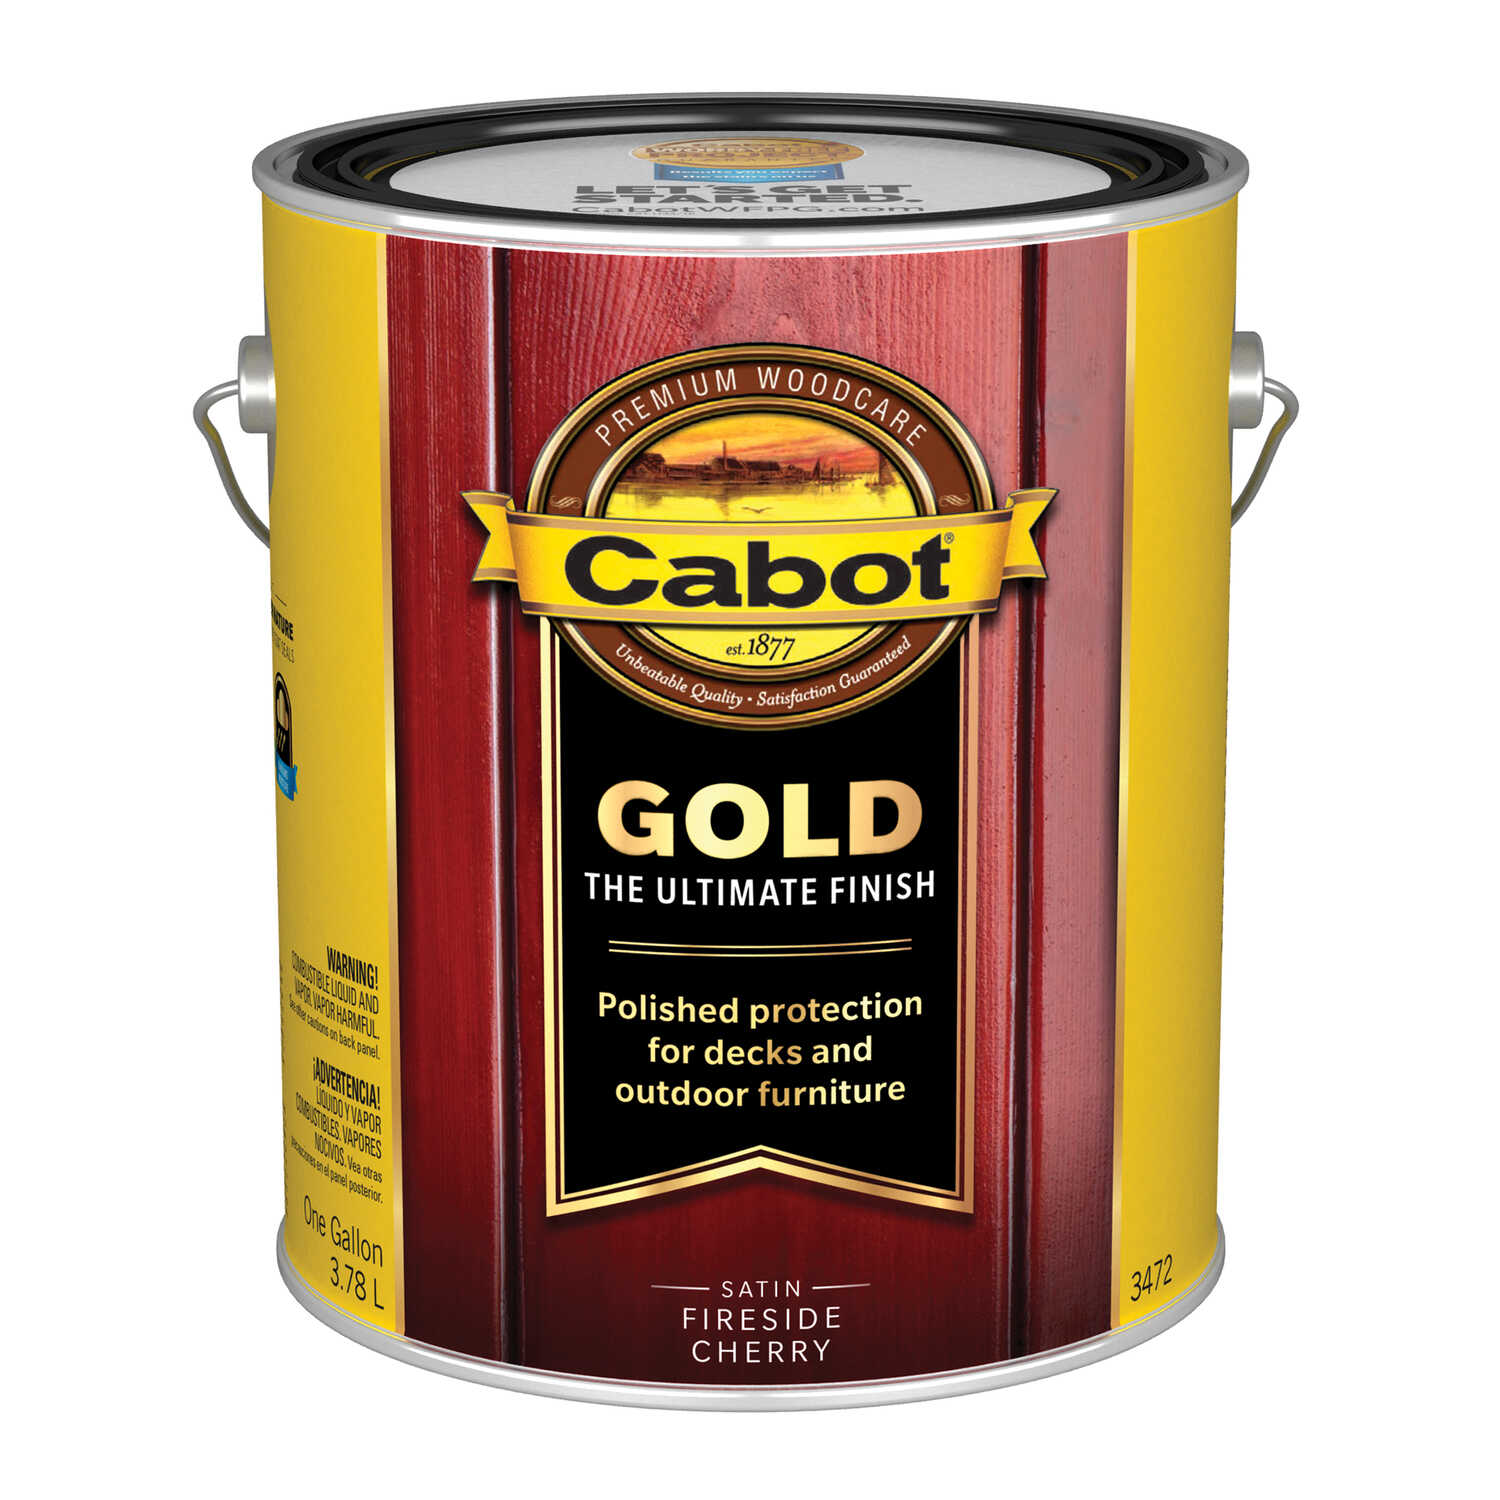 Cabot  Gold  Transparent  Satin  Fireside Cherry  Oil-Based  Natural Oil/Waterborne Hybrid  Stain  1